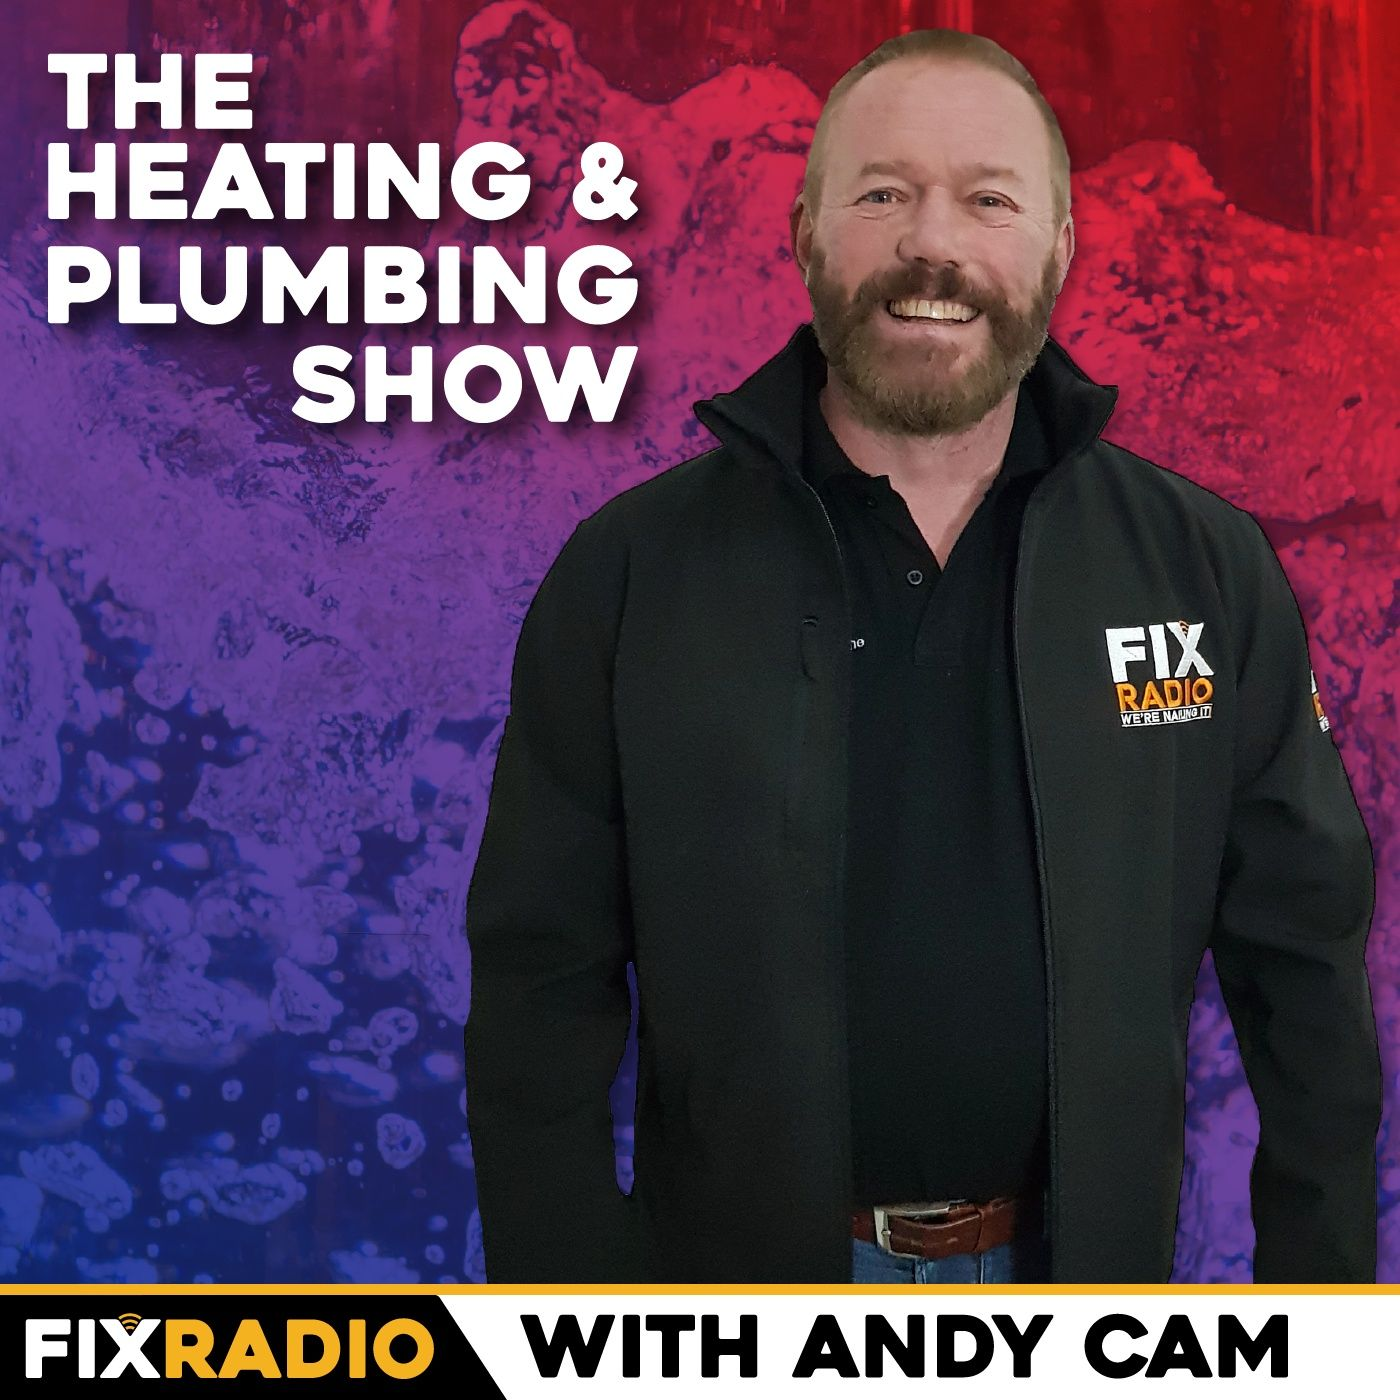 The Heating and Plumbing Show